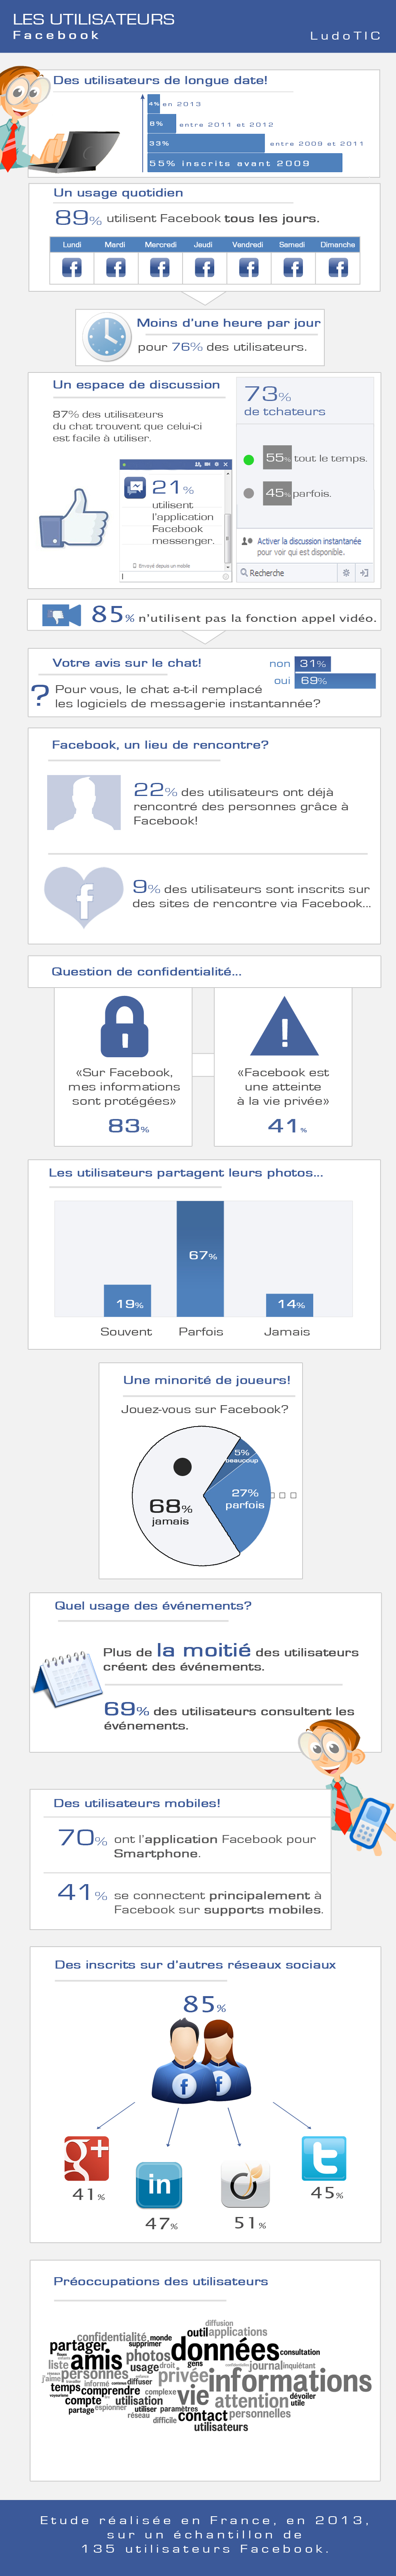 Infographie usages Facebook